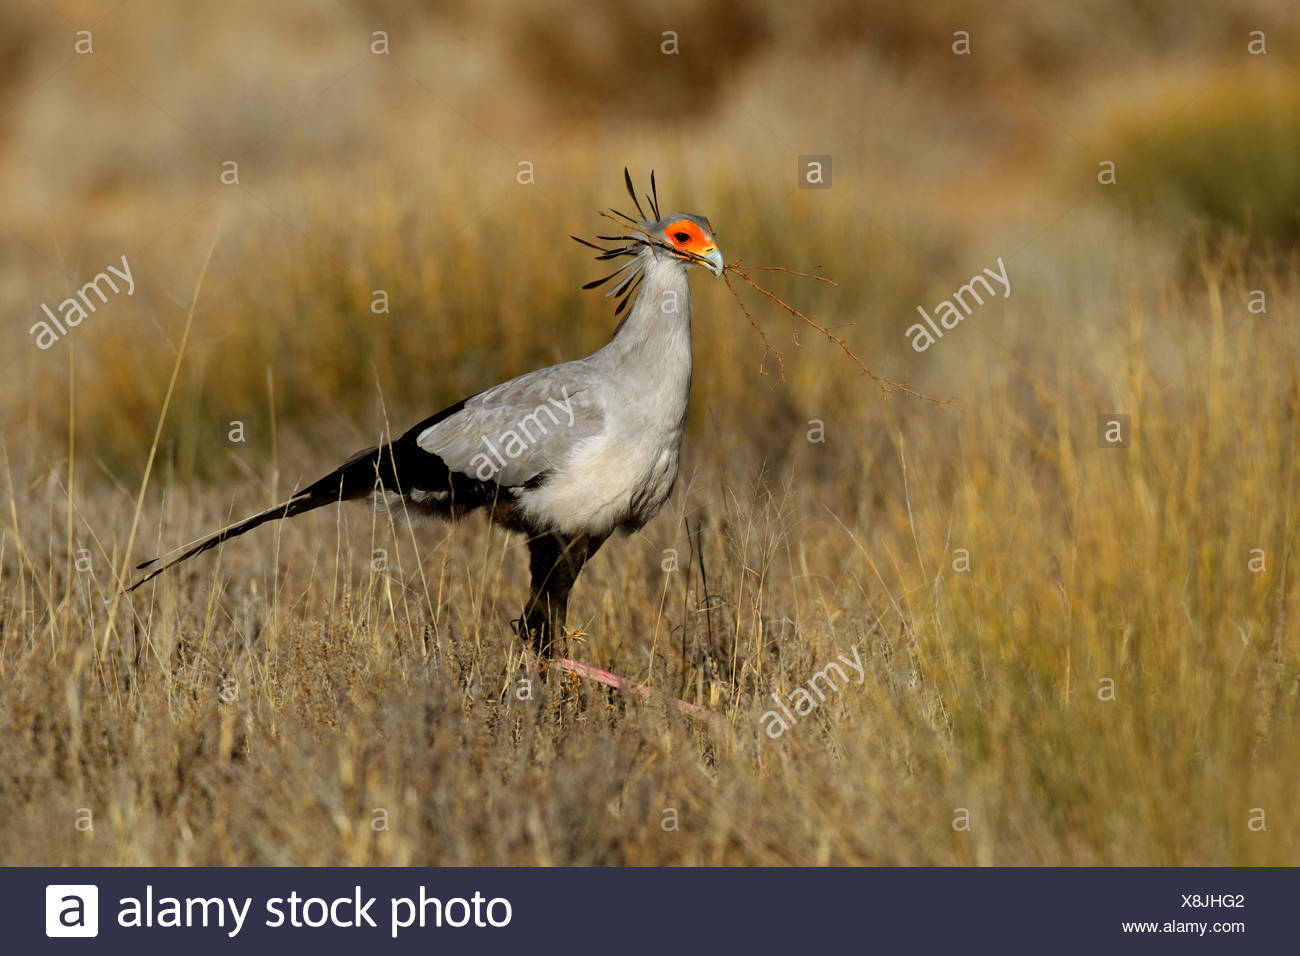 secretary bird, Sagittarius serpentarius (Sagittarius serpentarius), walking through grassland and looks for nesting material , South Africa, Kgalagadi Transfrontier National Park - Stock Image